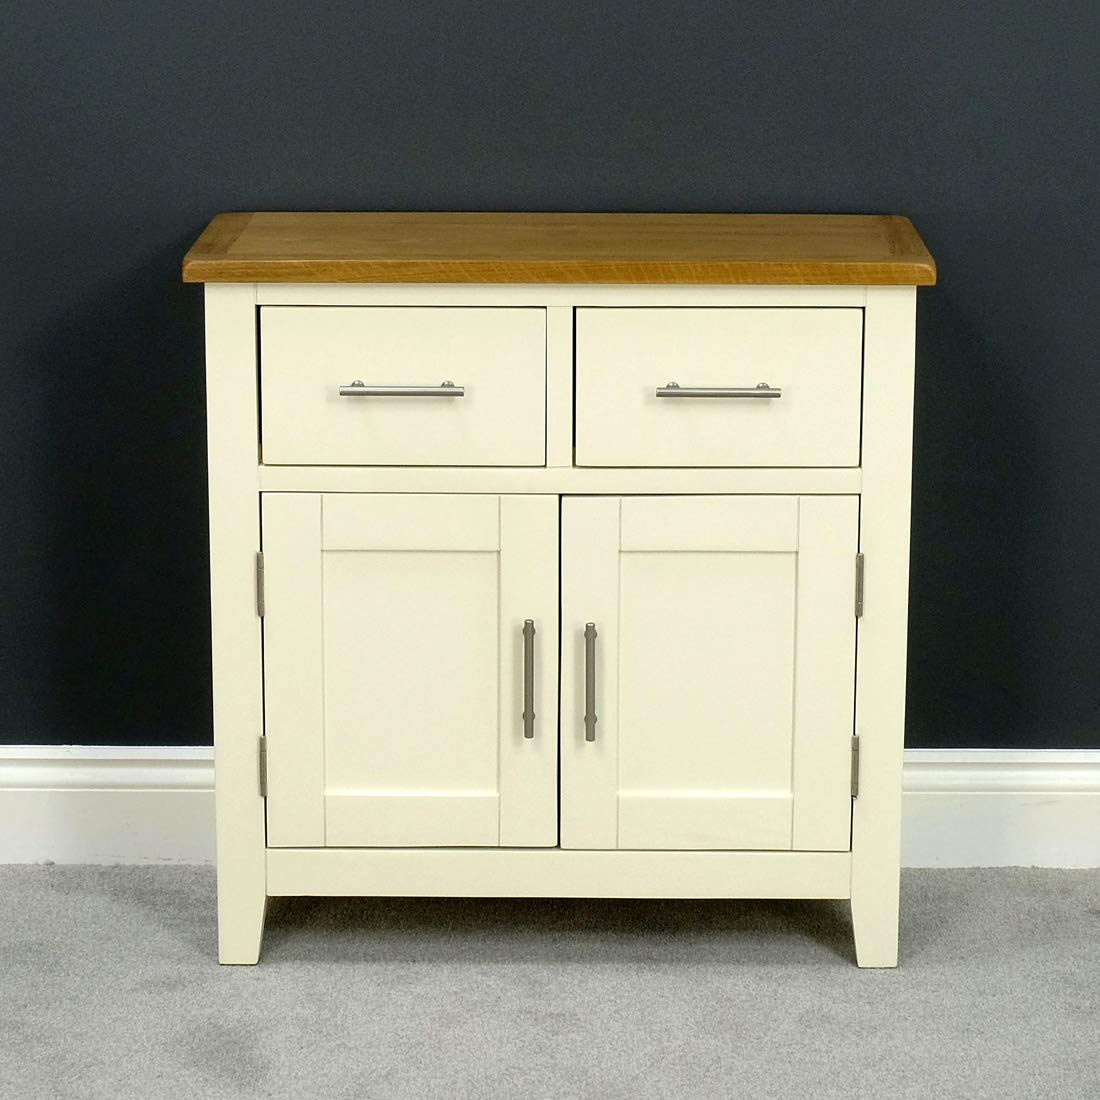 Nebraska Painted Oak Mini Sideboard//Cream Small 2 Door 2 Drawer Storage Dresser Cupboard Cabinet Unit